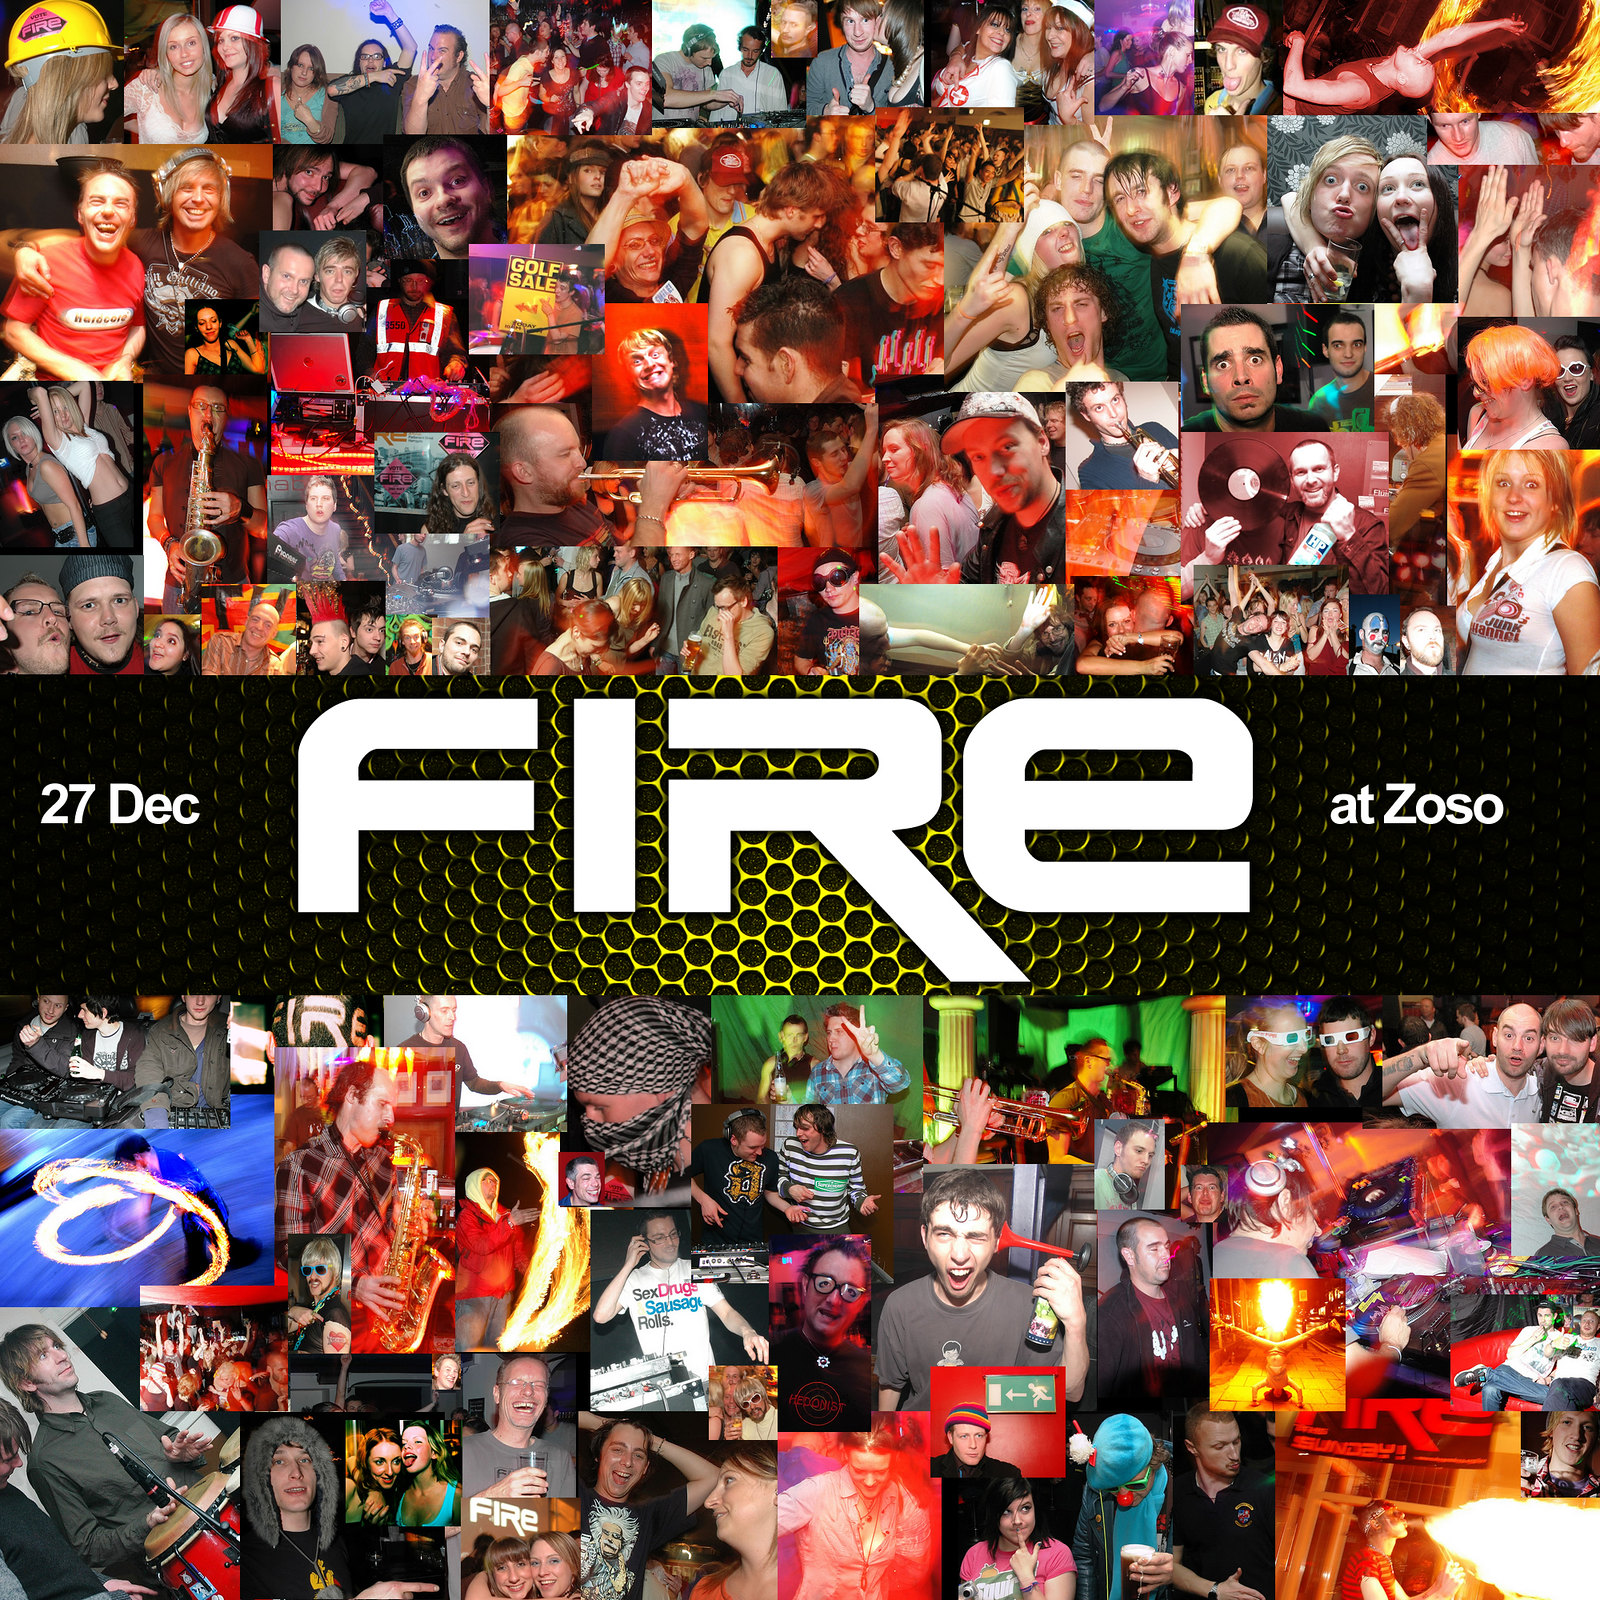 FIRE party - Harrogate